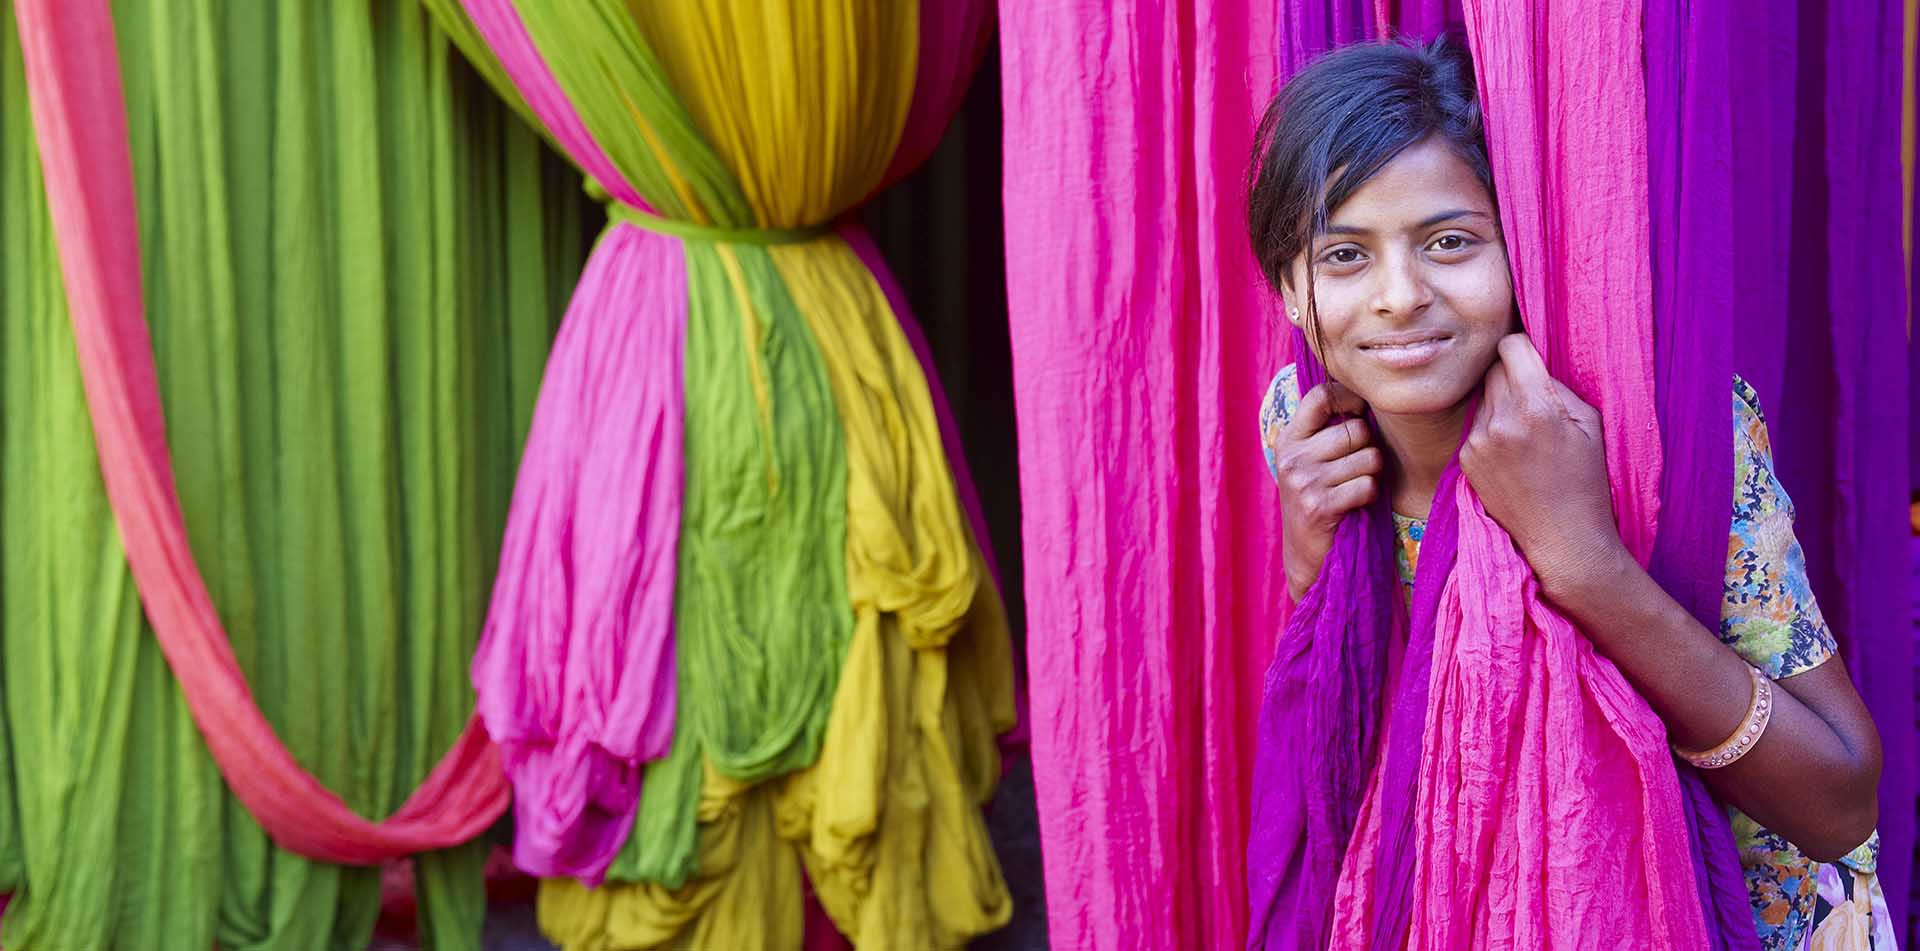 Asia India local girl peeking through colorful fabric at sari factory - luxury vacation destinations